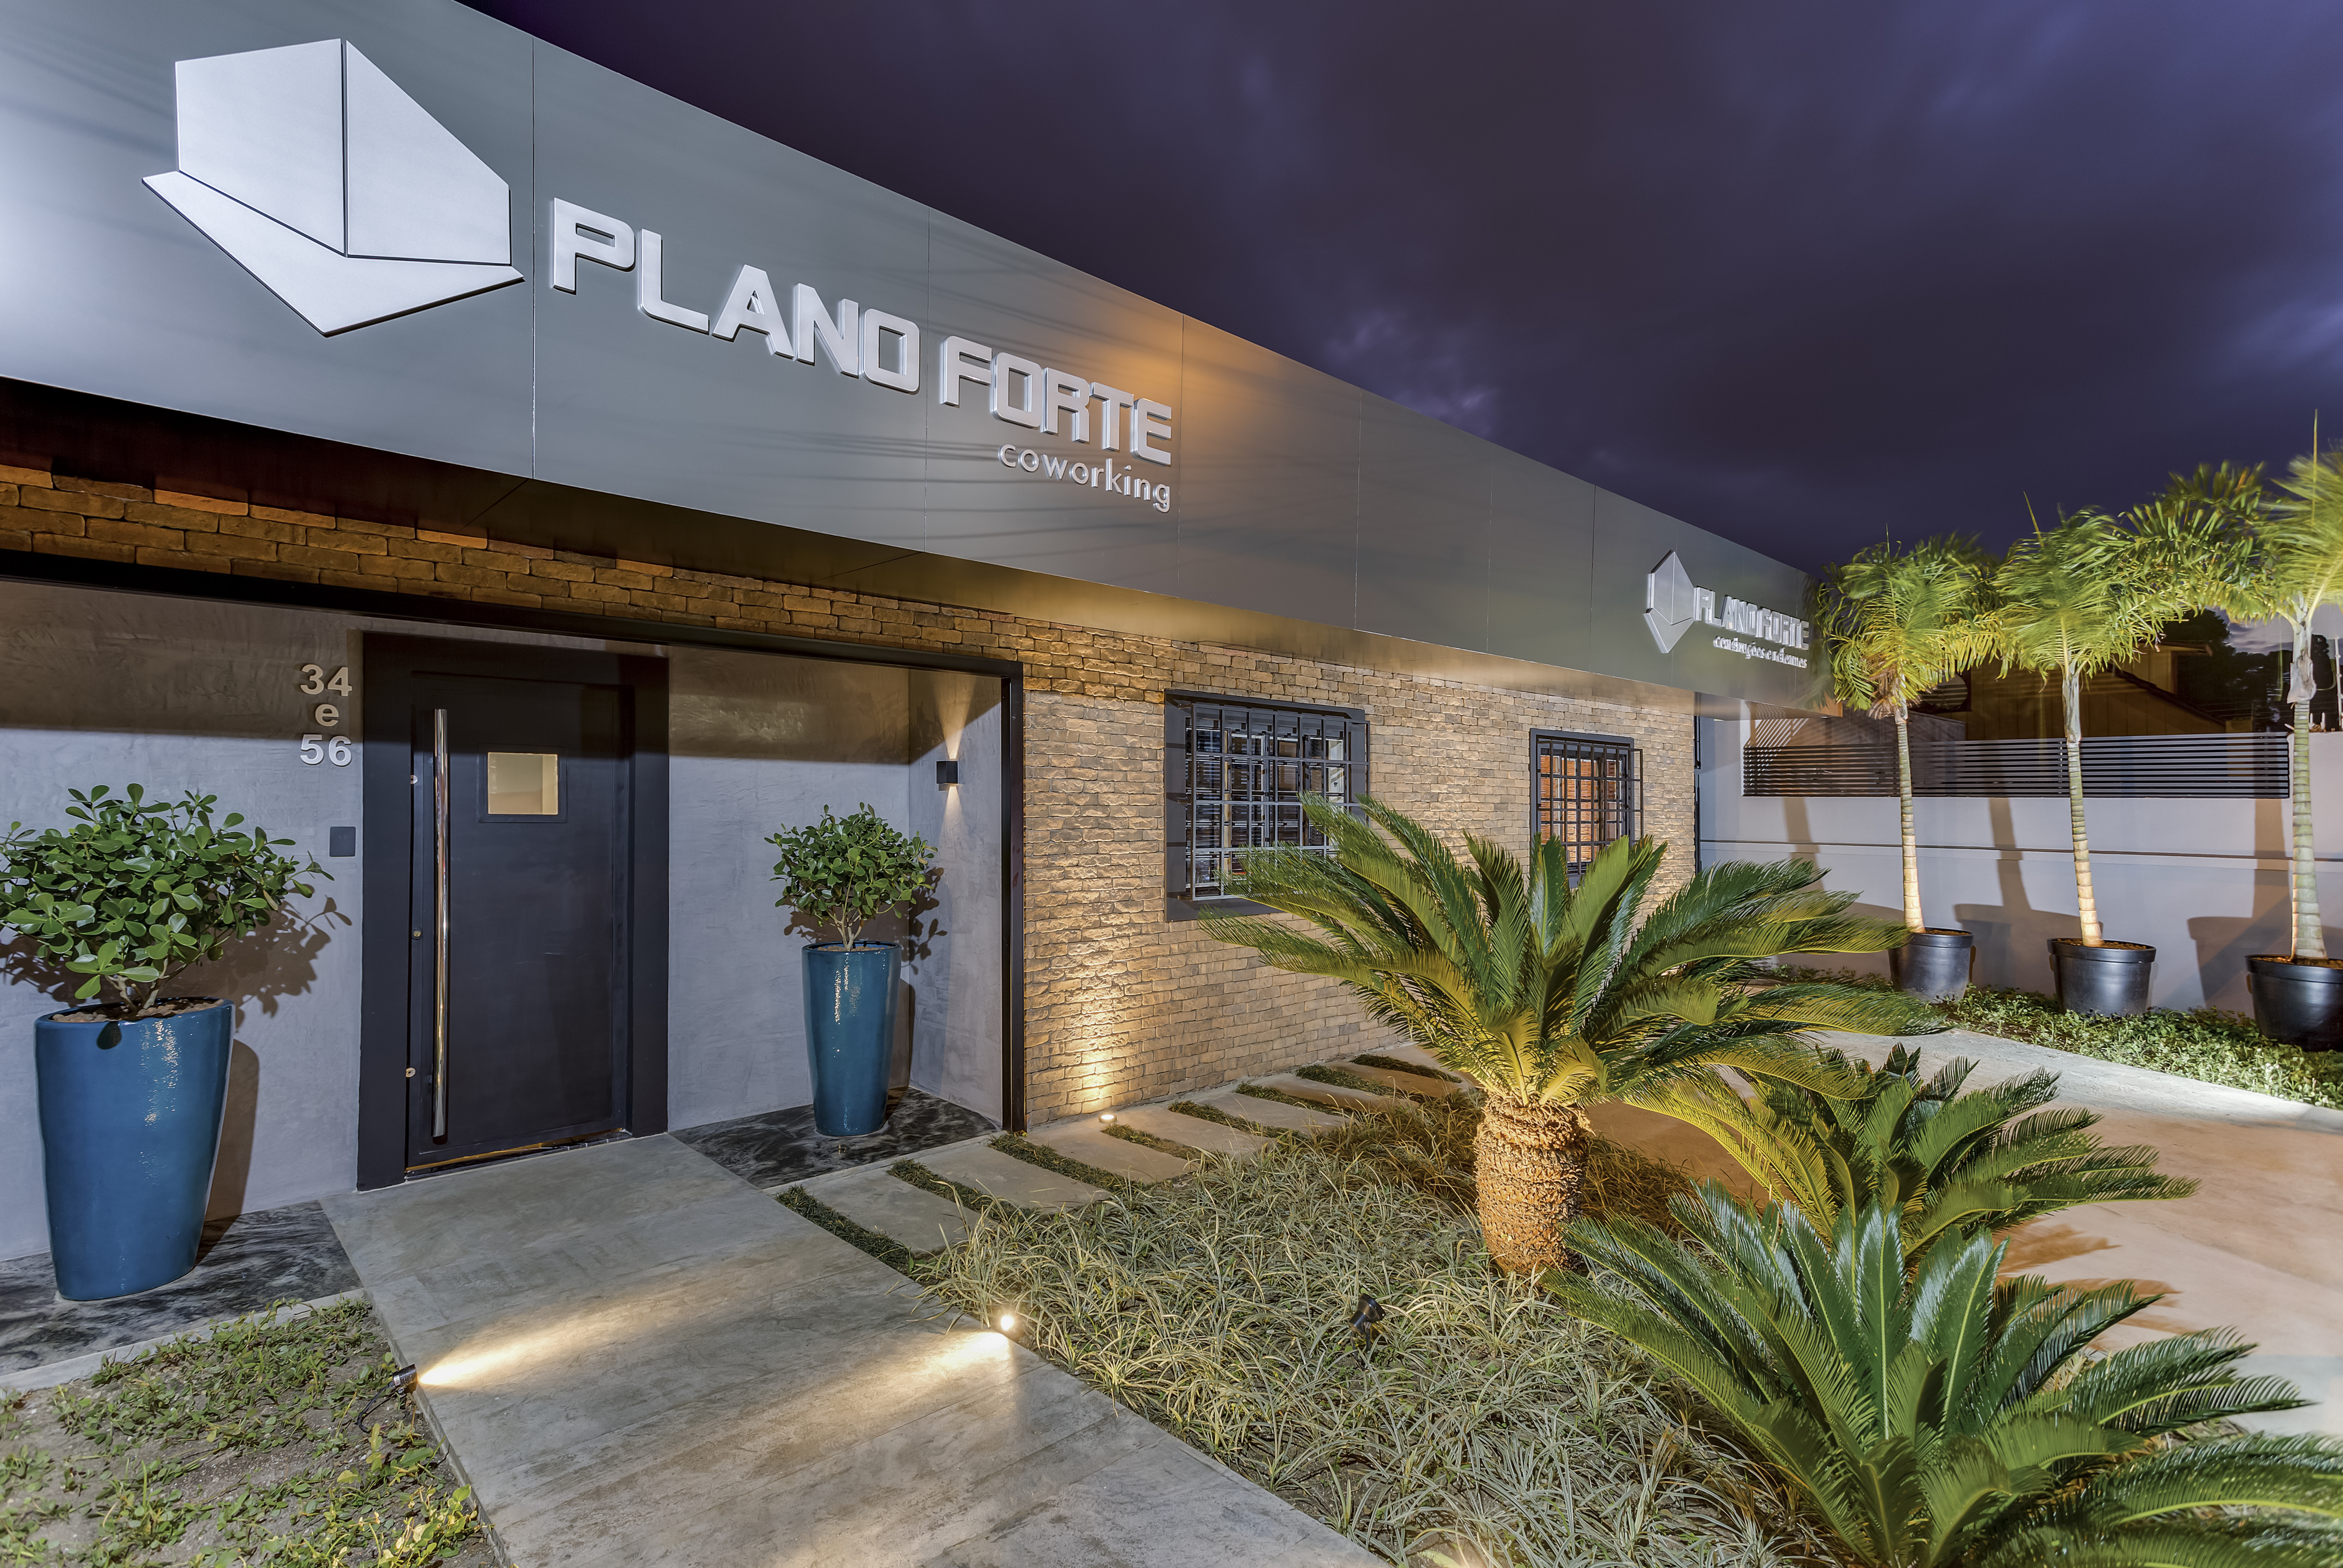 1-coworking-plano-forte